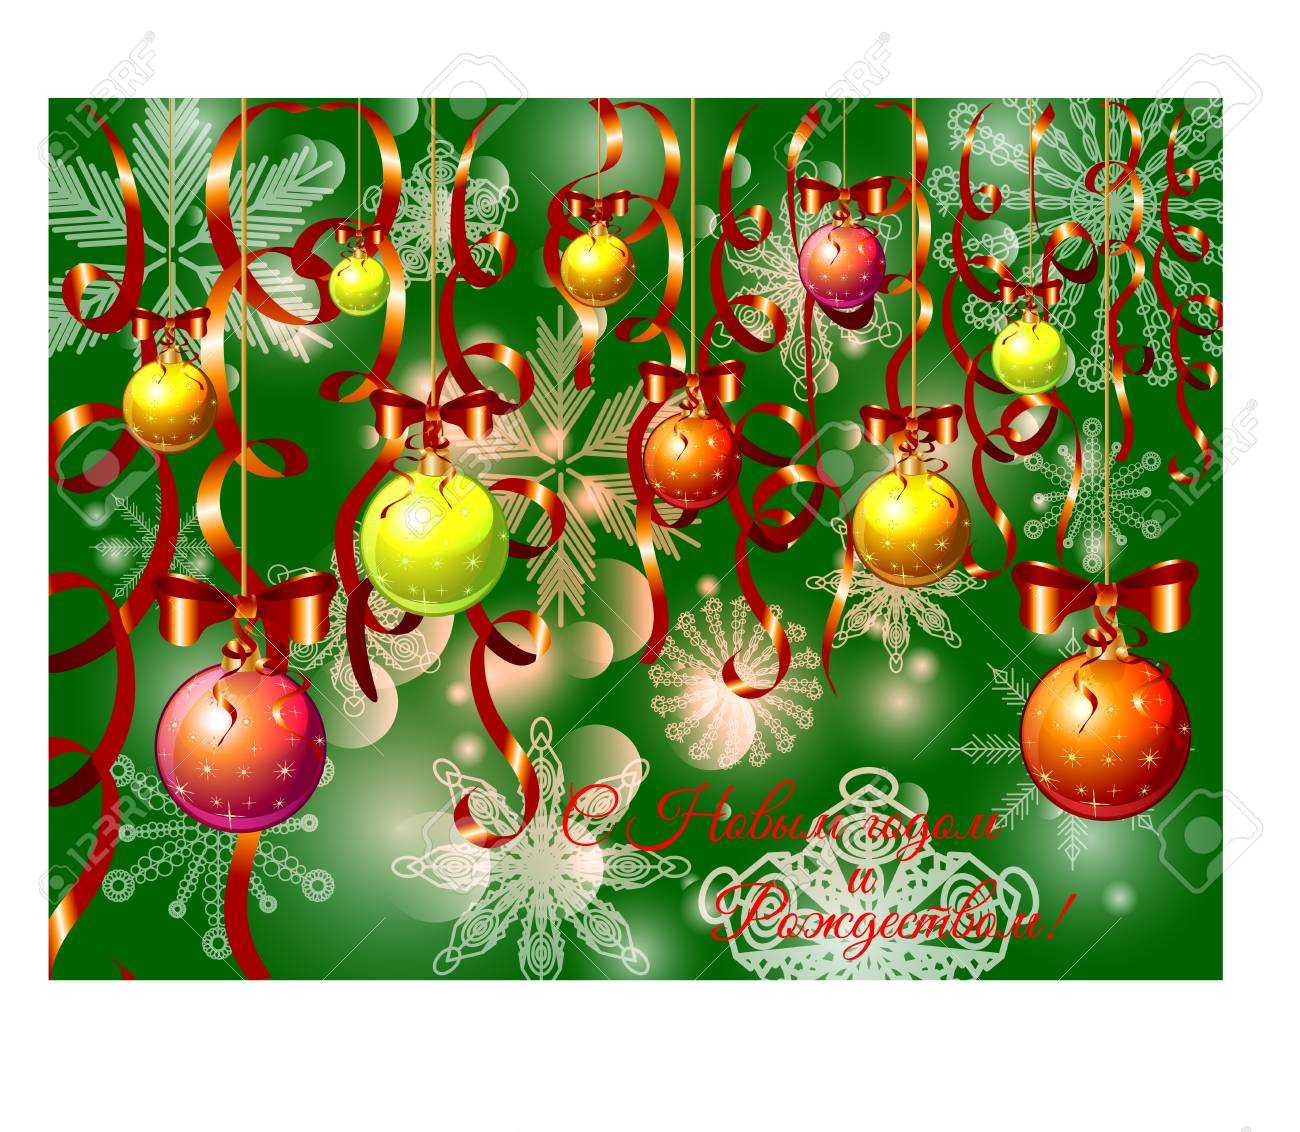 Christmas Green And Red.Inscription In Russian Happy New Year And Merry Christmas Green